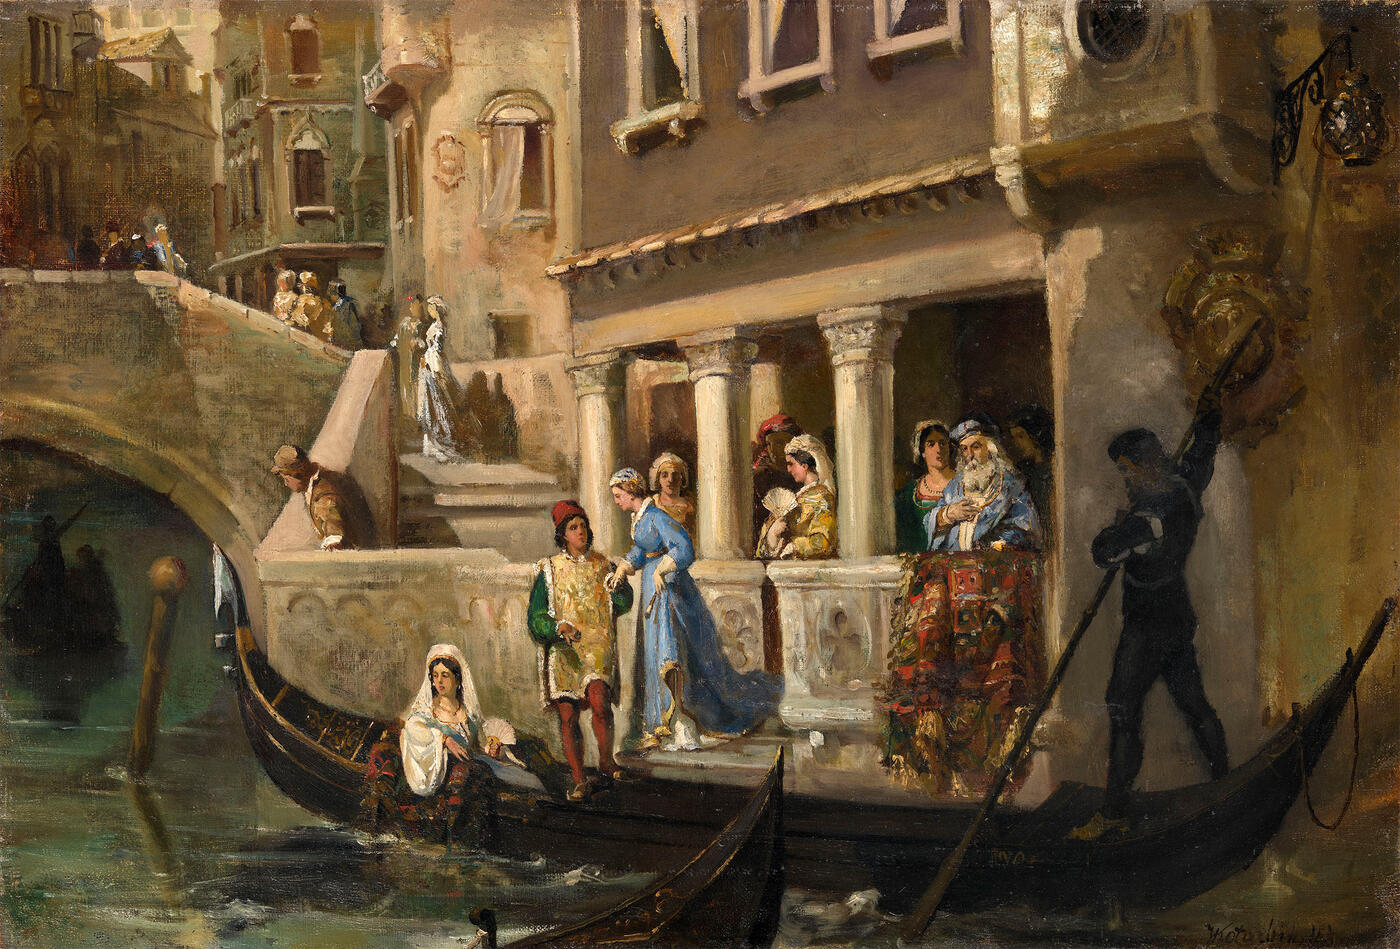 Dignitaries Boarding a Gondola on a Venetian Backwater